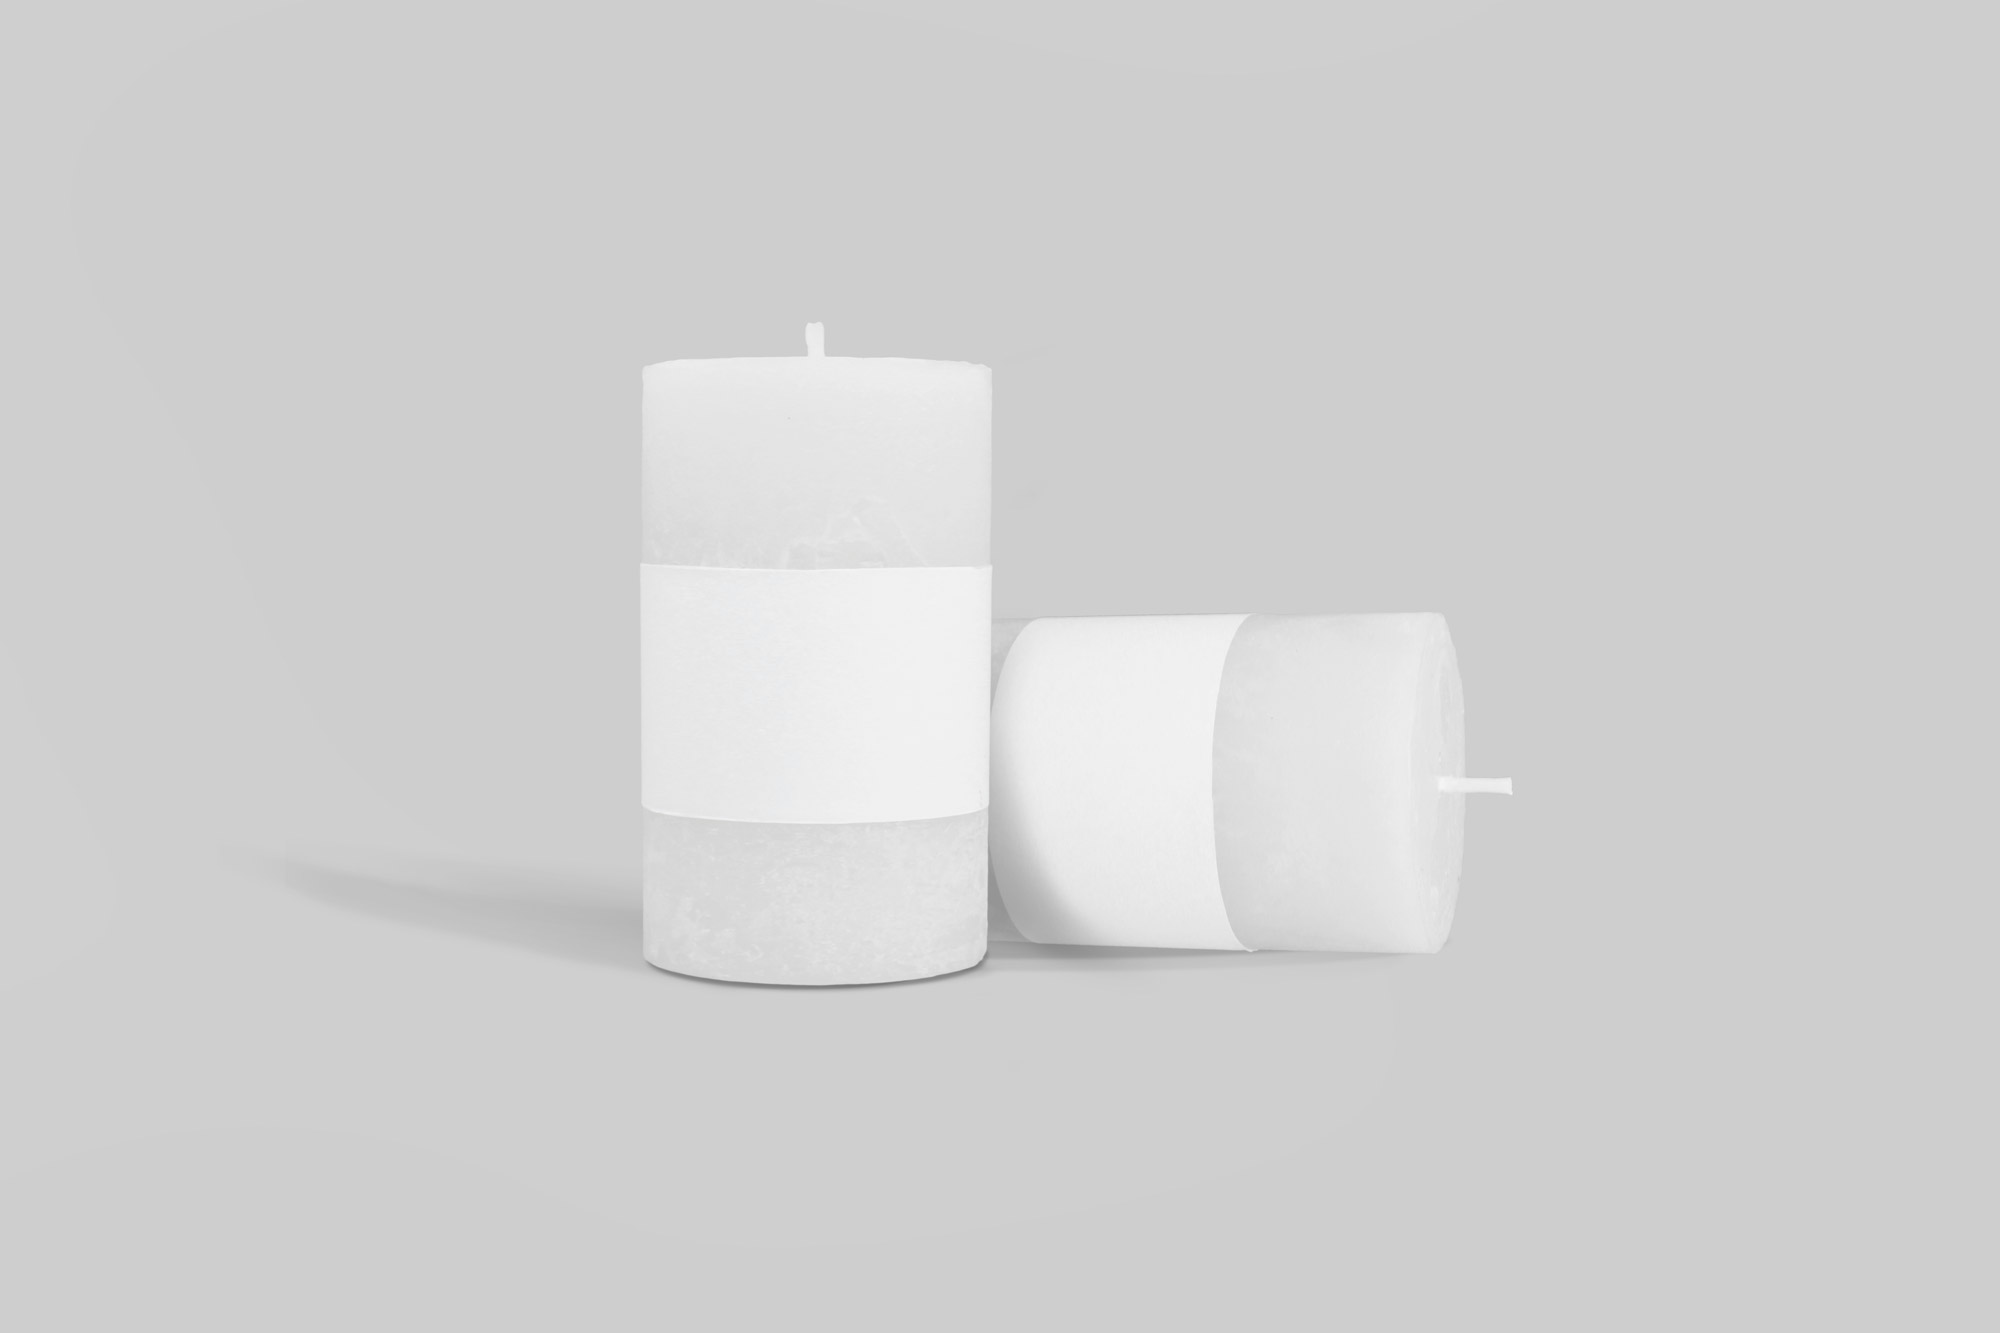 Candle Mock-up Pack #1 example image 6